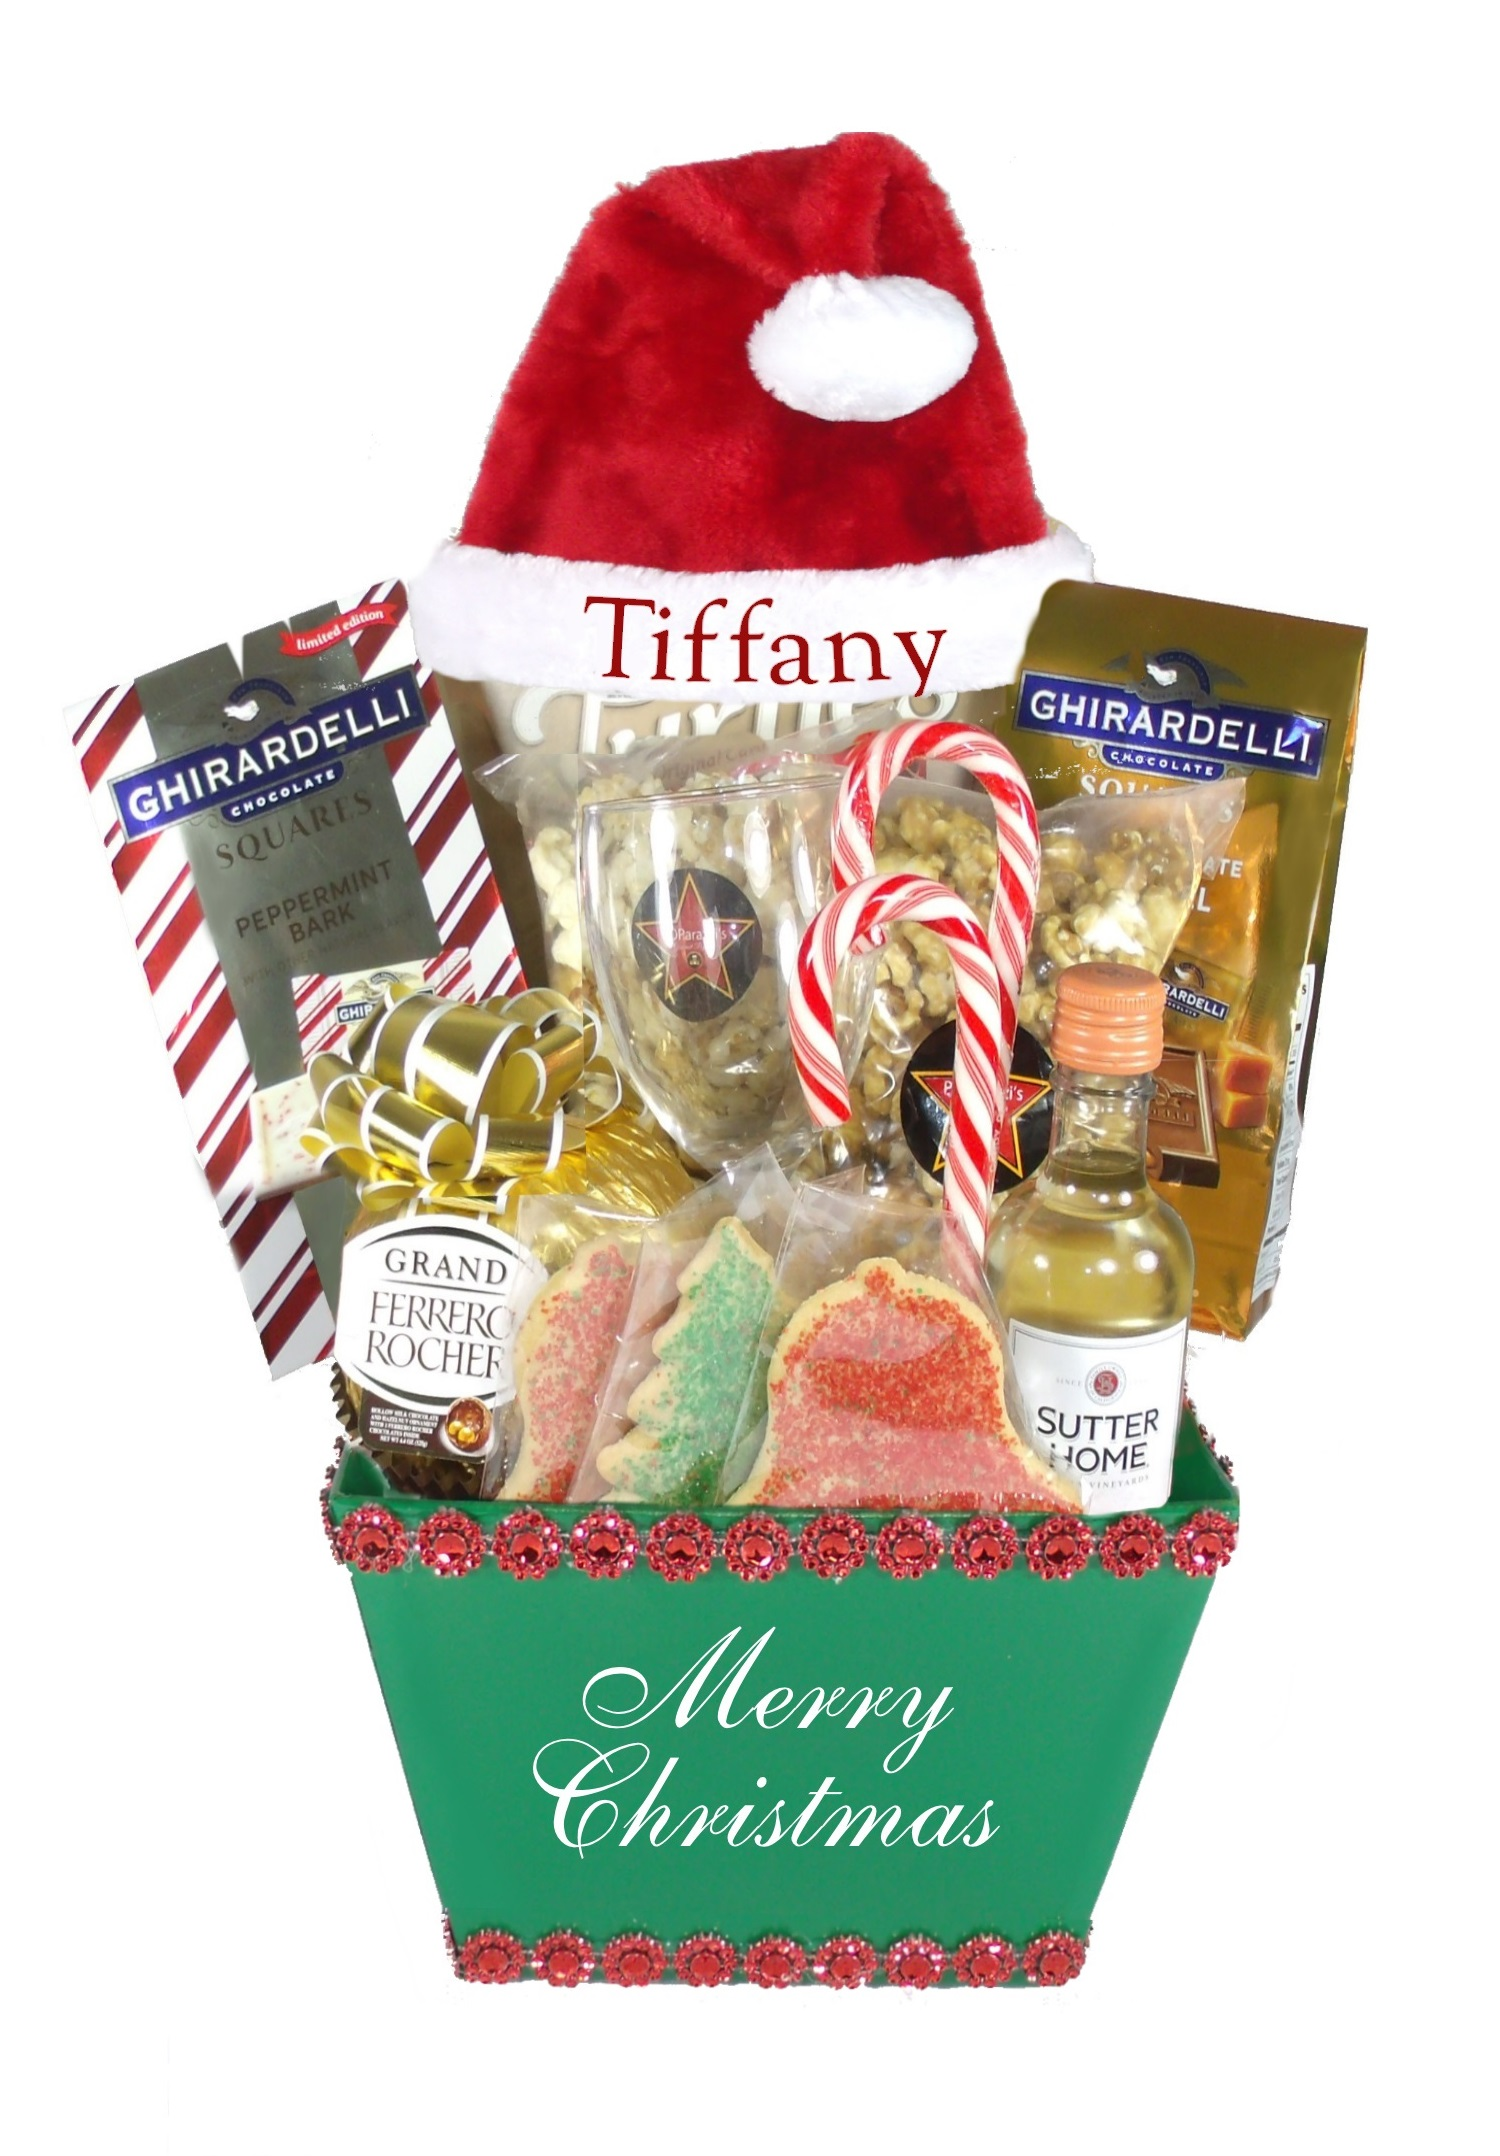 Christmas gift baskets for her product categories array of gifts santas helper green array of gifts christmas gift baskets houston tx negle Choice Image